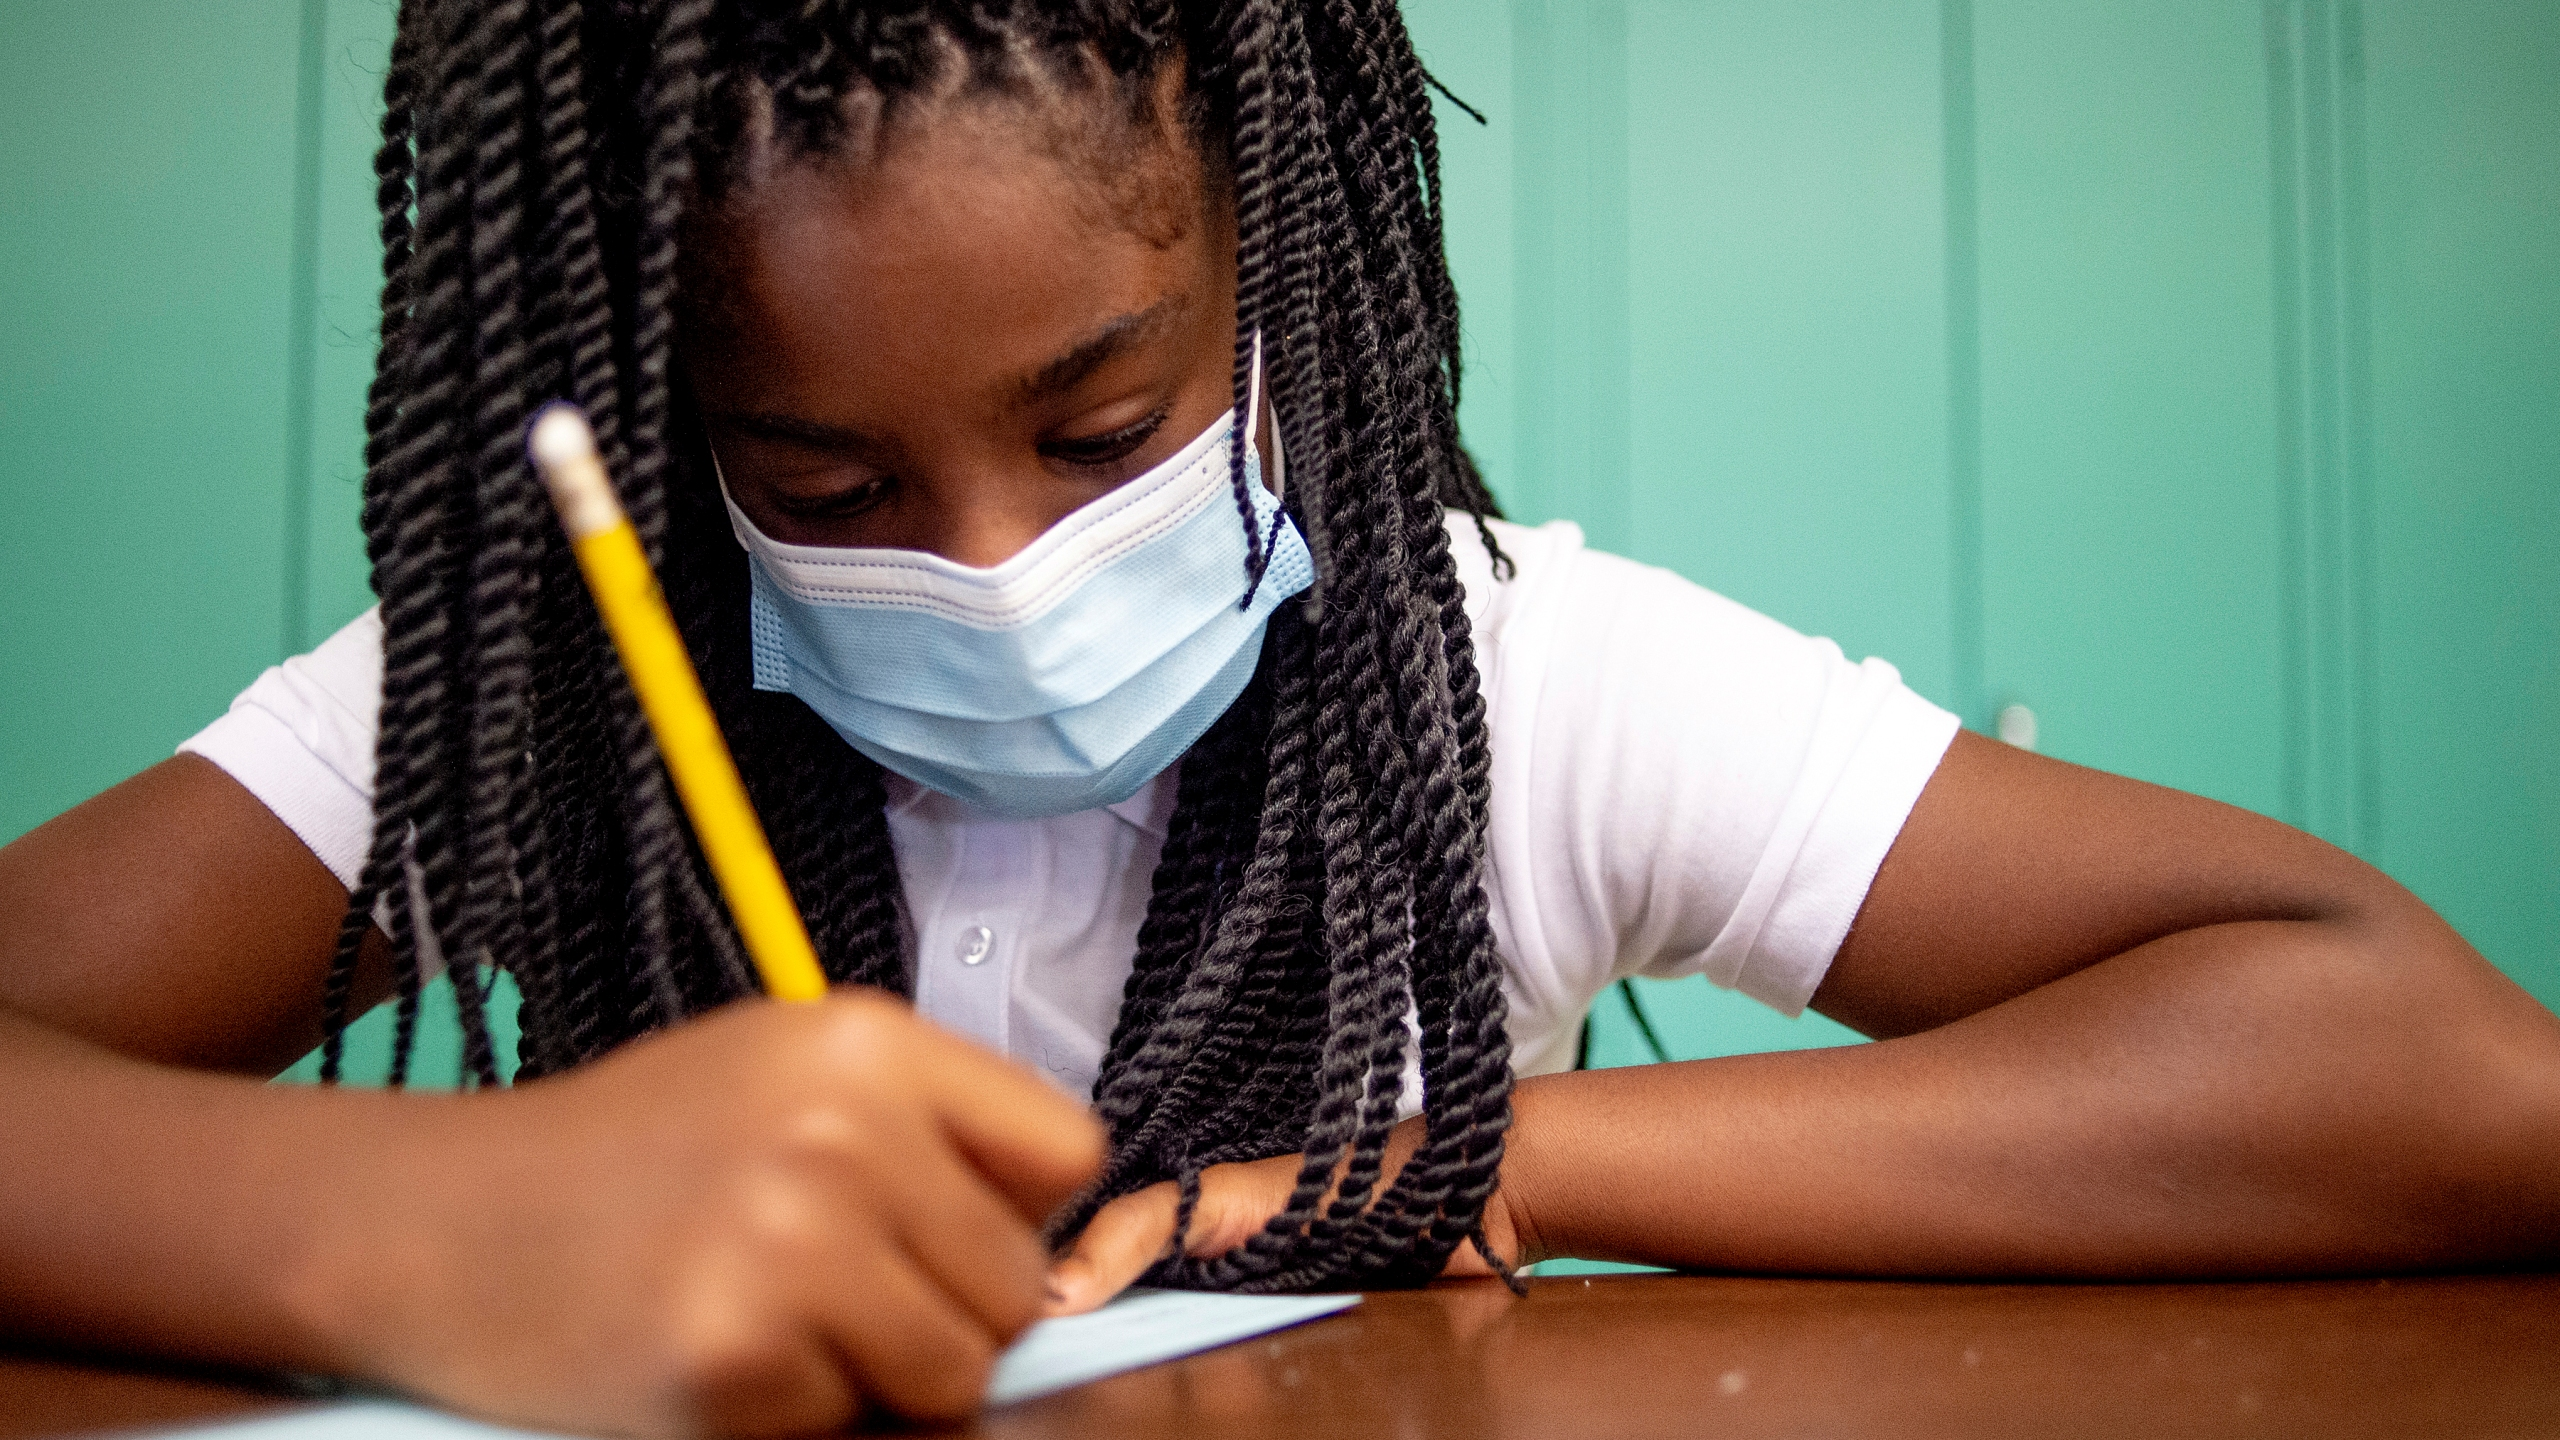 Sixth-grader Adriana Campbell, 11, jots down her name as she starts to work on her first assignment during the first day of school on Wednesday, Aug. 4, 2021 at Freeman Elementary School in Flint, Mich. (Jake May/The Flint Journal via AP)